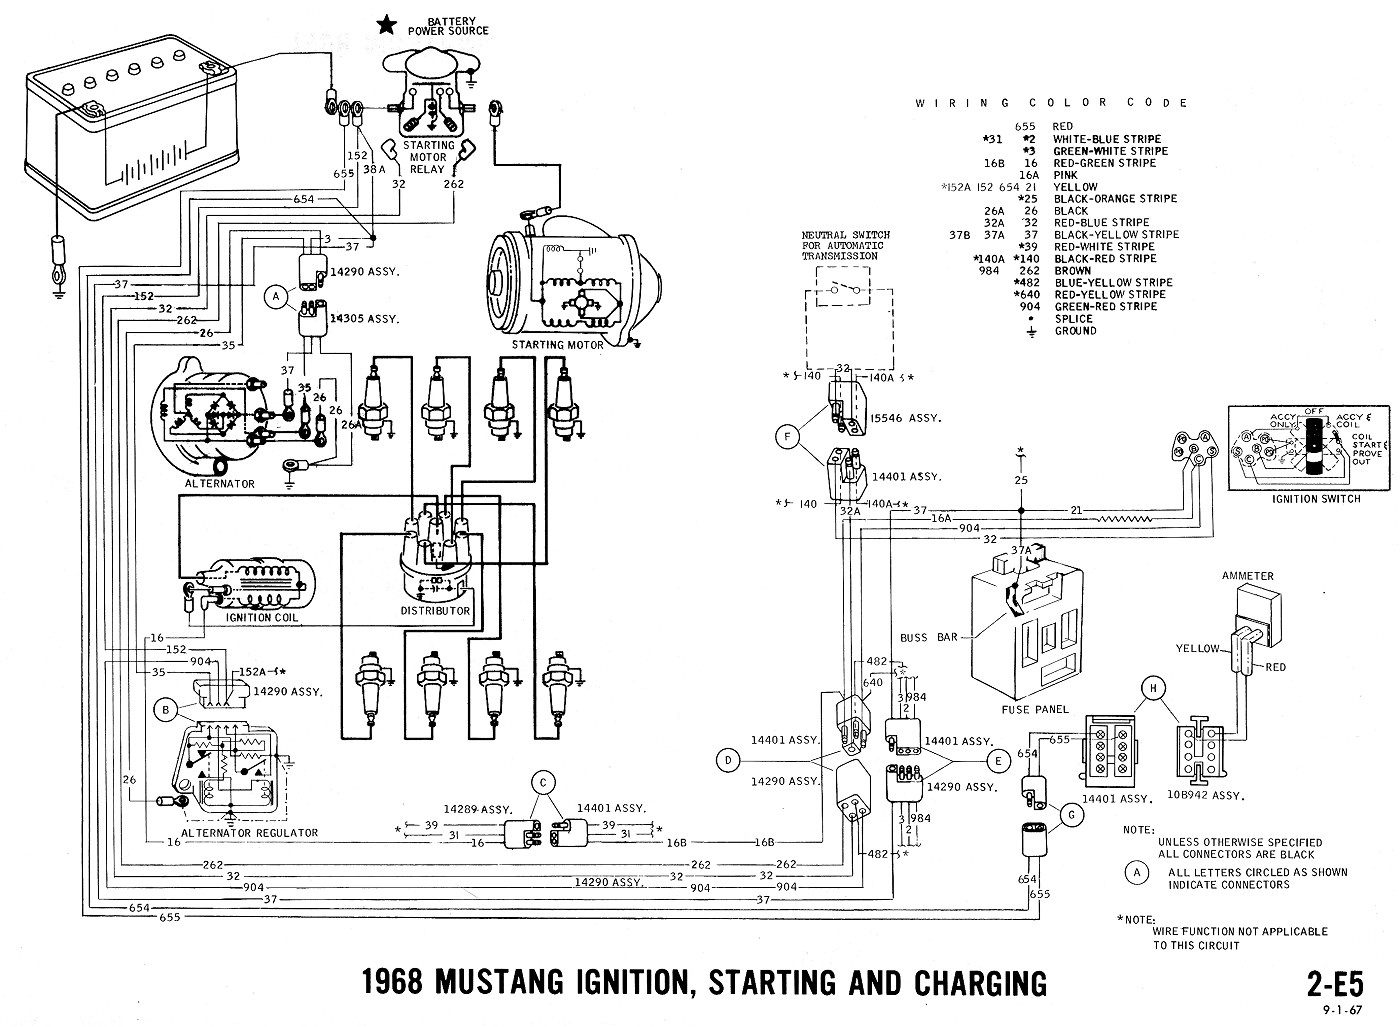 1968 mustang wiring diagrams evolving software rh peterfranza com wiring diagram ford mustang 2007 wiring diagram ford mustang 1966